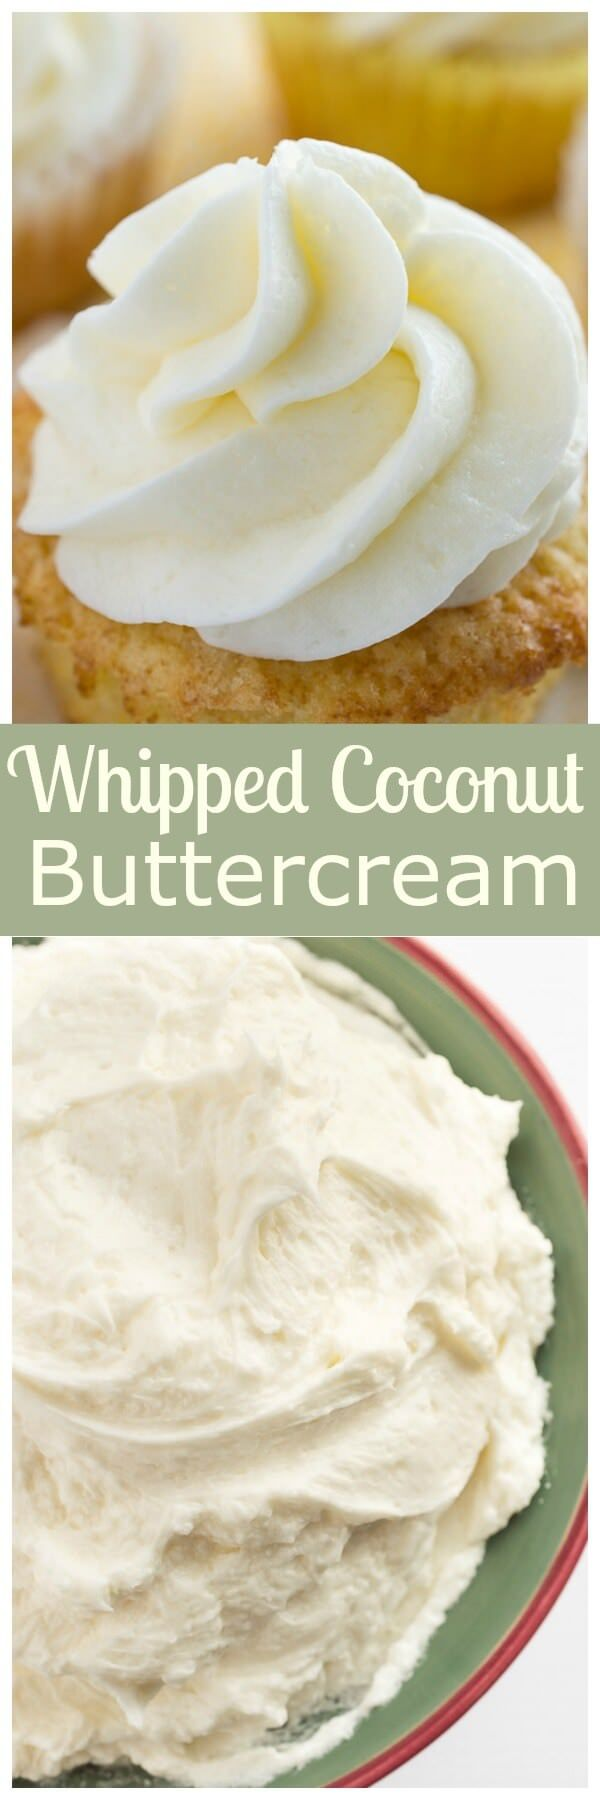 There's nothing better than this recipe for homemade Coconut Buttercream Frosting. It's a made from scratch simple recipe that is perfect…